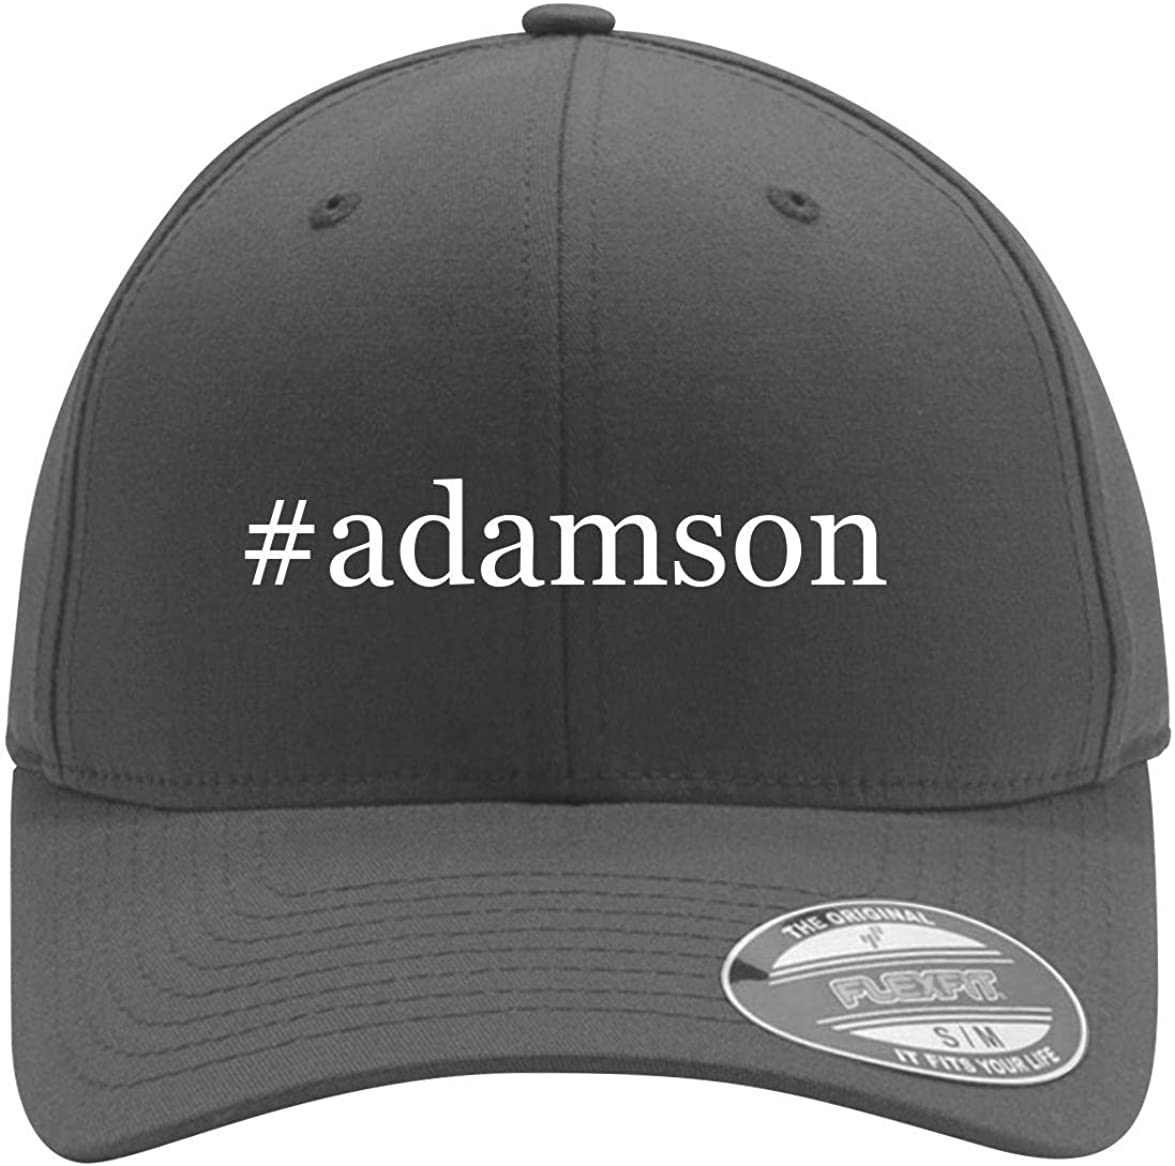 #Adamson - Adult Men'S Hashtag Flexfit Baseball Hut Cap